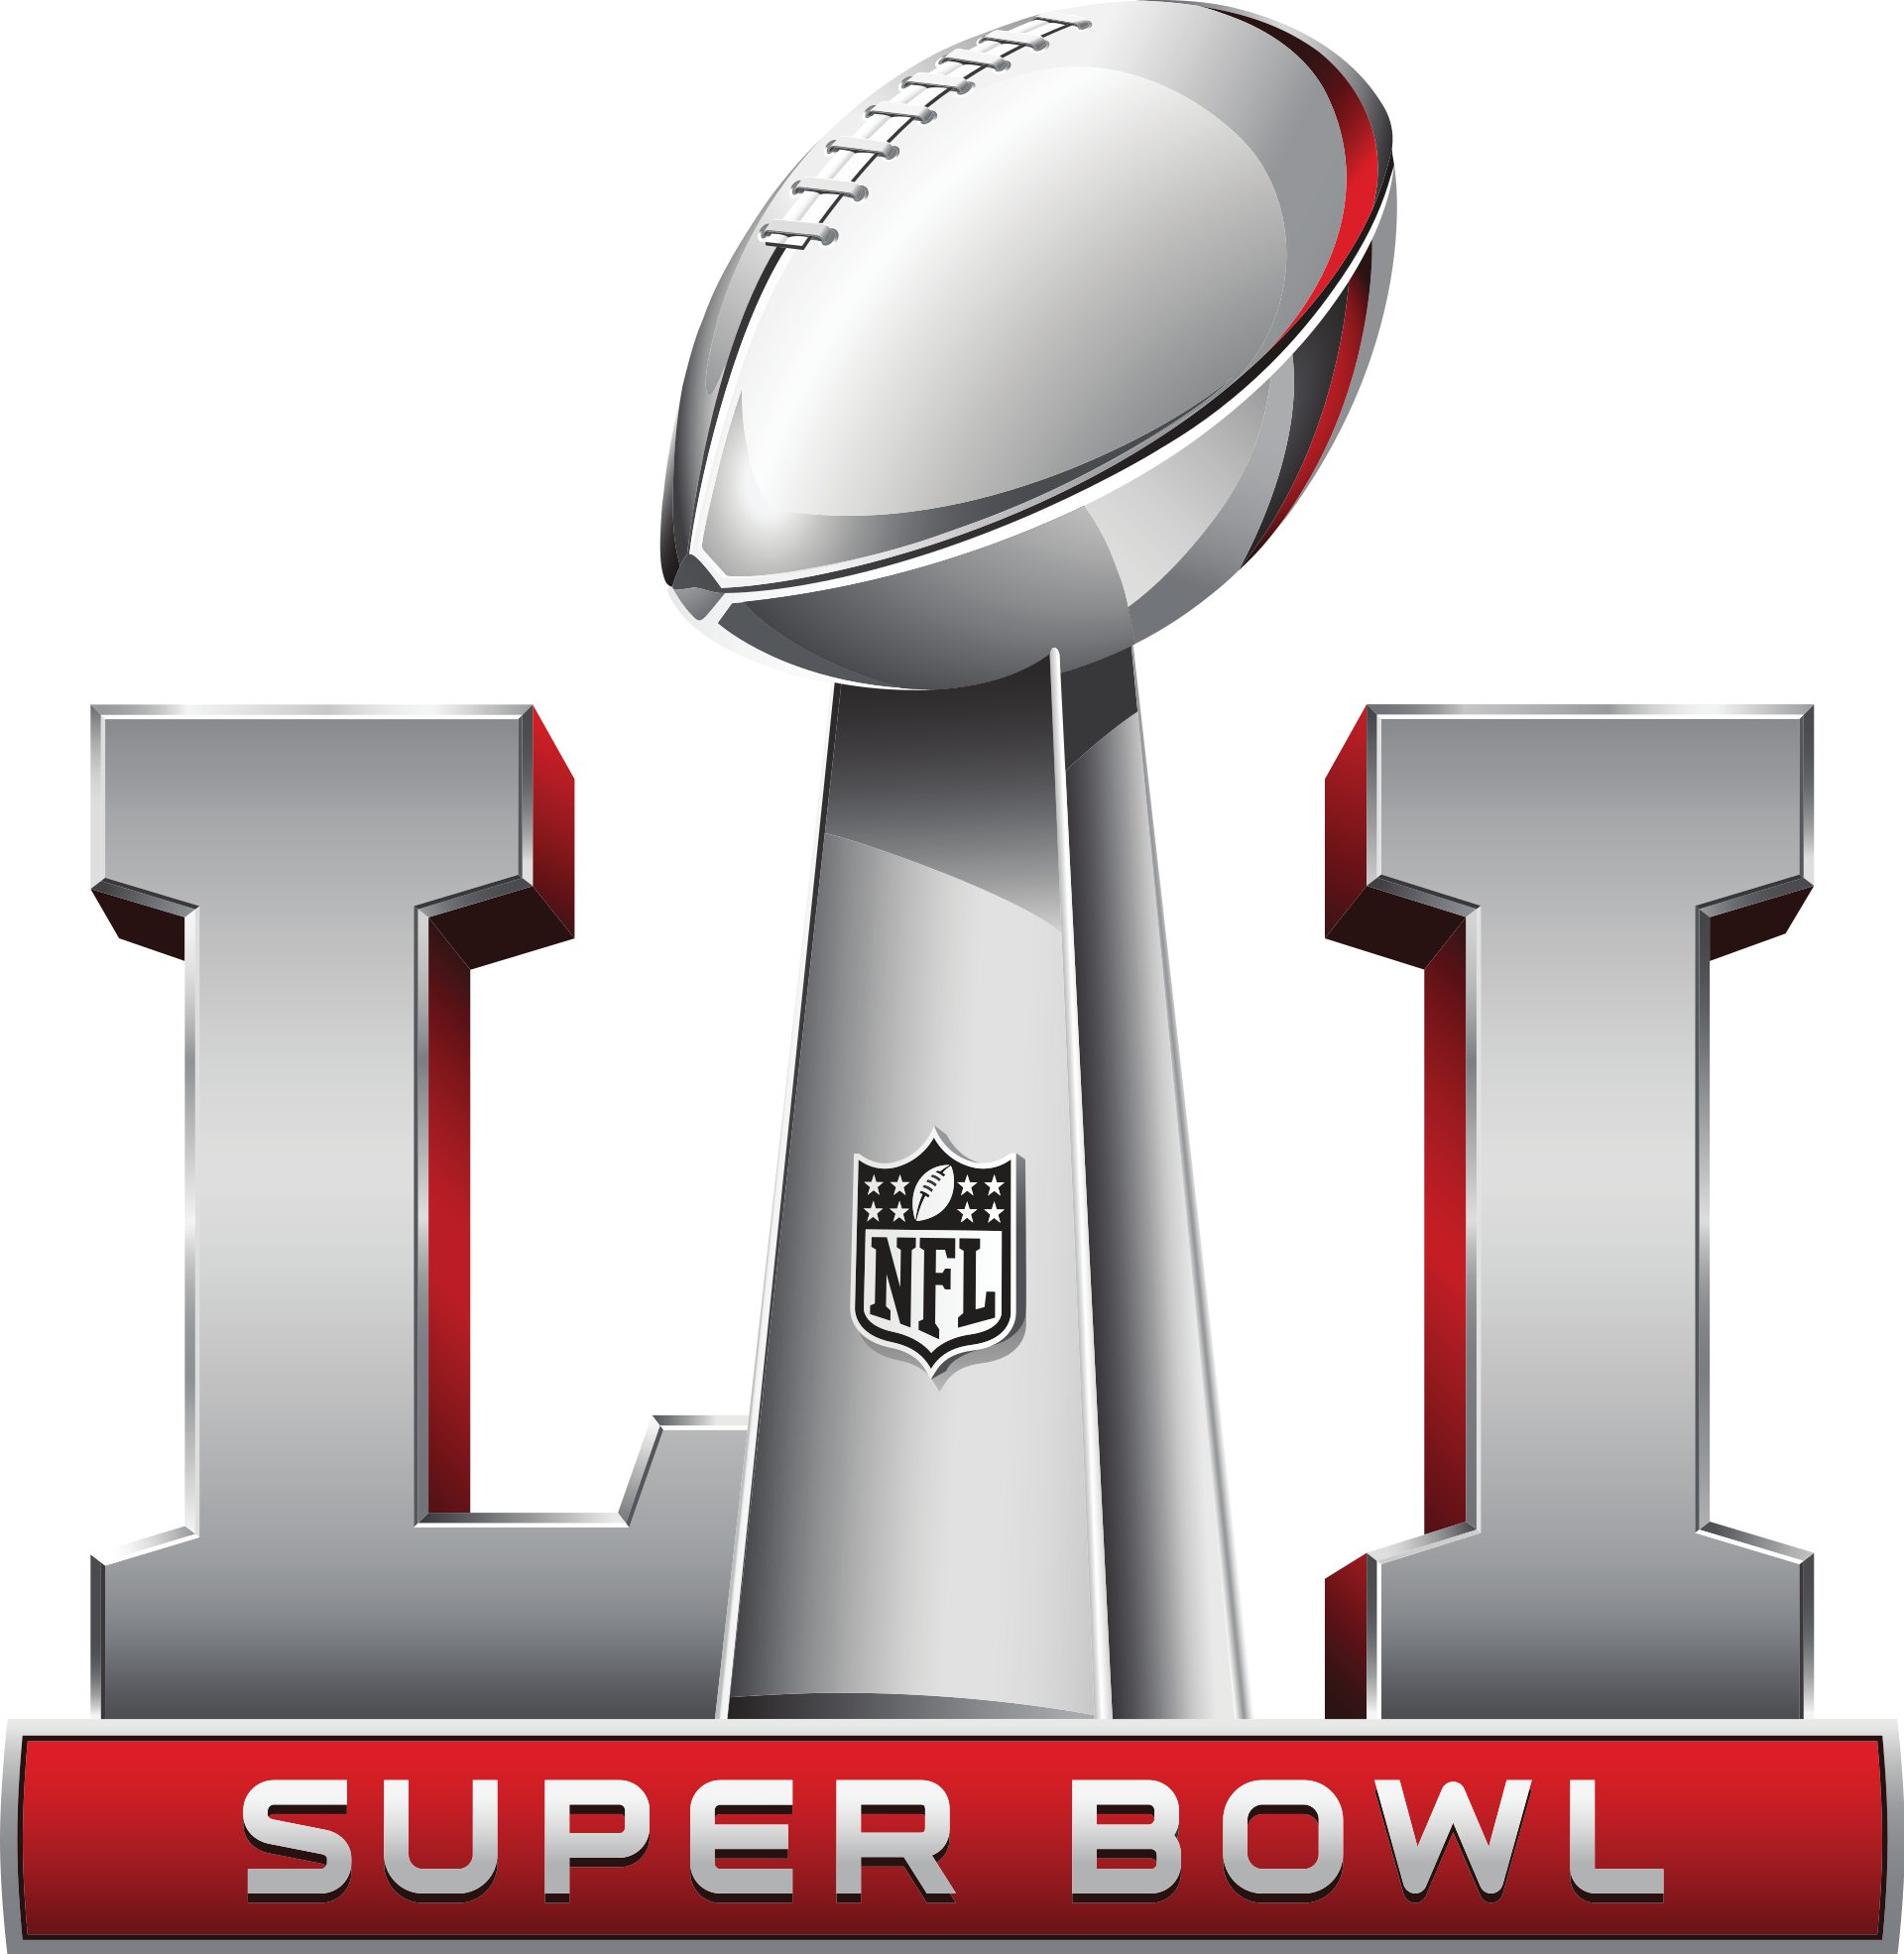 going to the super bowl Super bowl 53 is headed to atlanta, georgia to be played in the beautiful mercedes-benz stadium the atlanta falcons will be the host team for super bowl liii the last time the super bowl was played in atlanta was back in 2000.